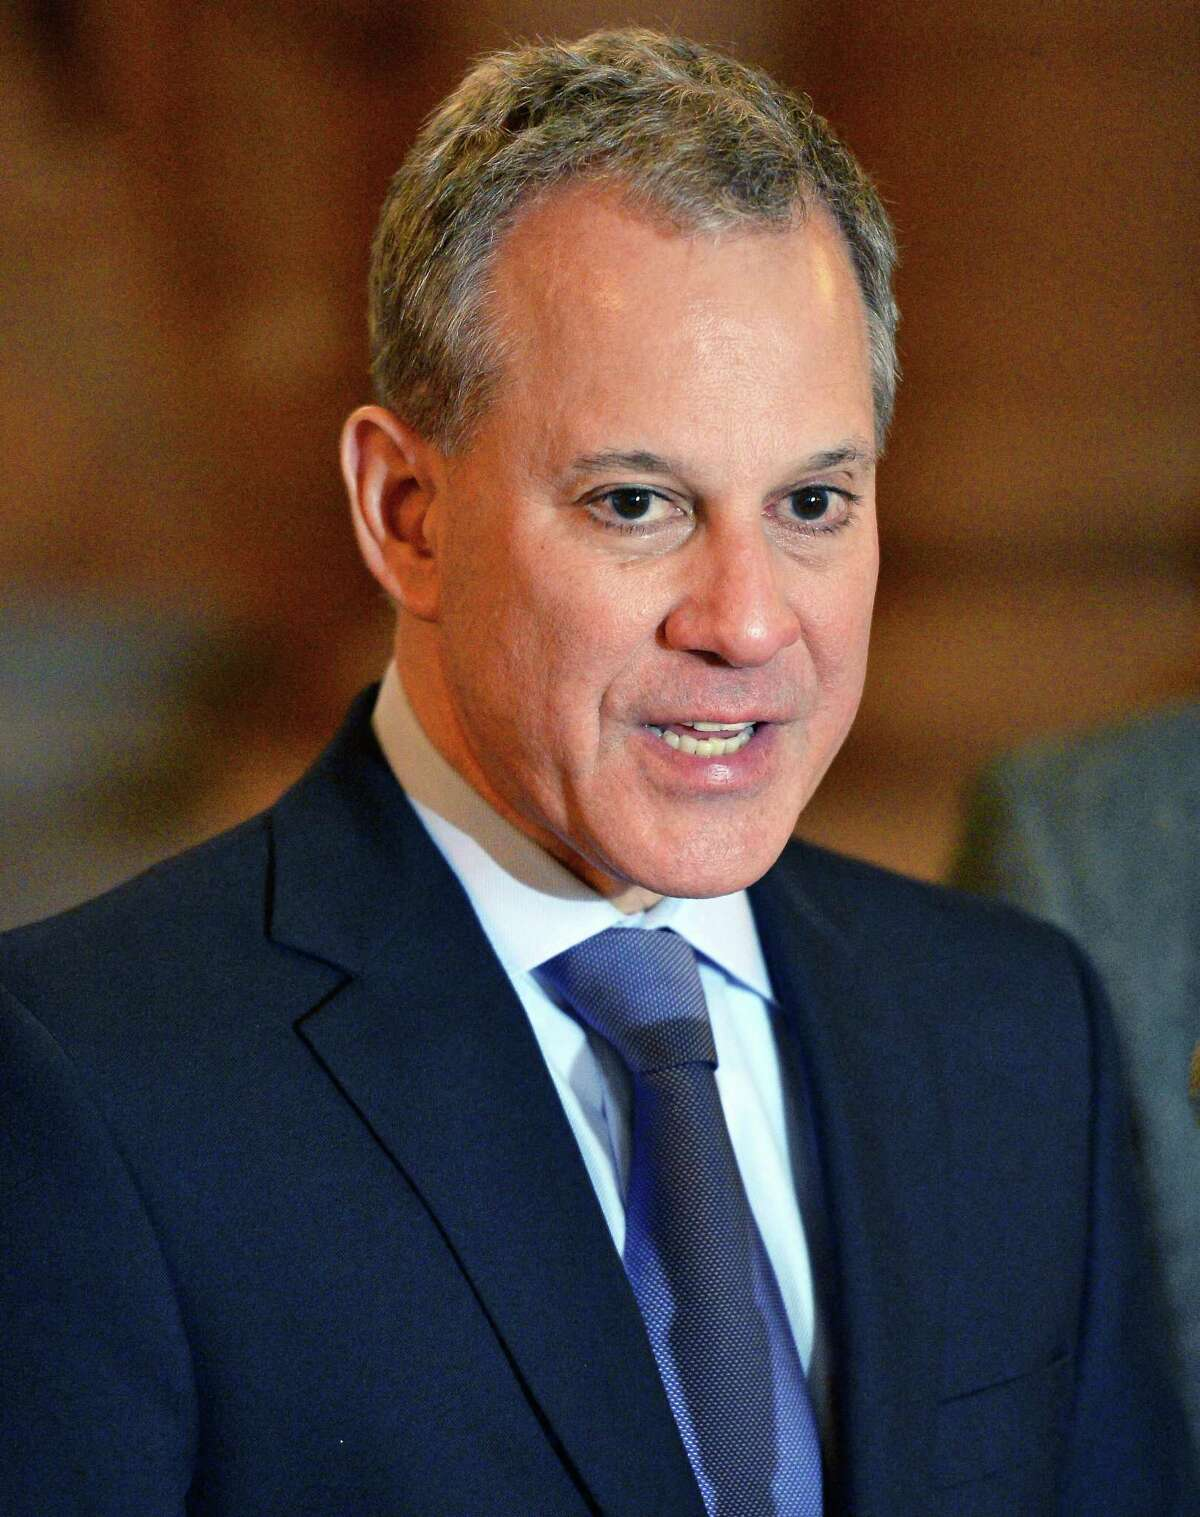 Attorney General Eric Schneiderman releases a report on voting rights across the state, detailing the results of his inquiry into the unprecedented level of voting complaints regarding the April 2016 presidential primary during a news conference at the Capitol Tuesday Dec. 6, 2016 in Albany, NY. (John Carl D'Annibale / Times Union)